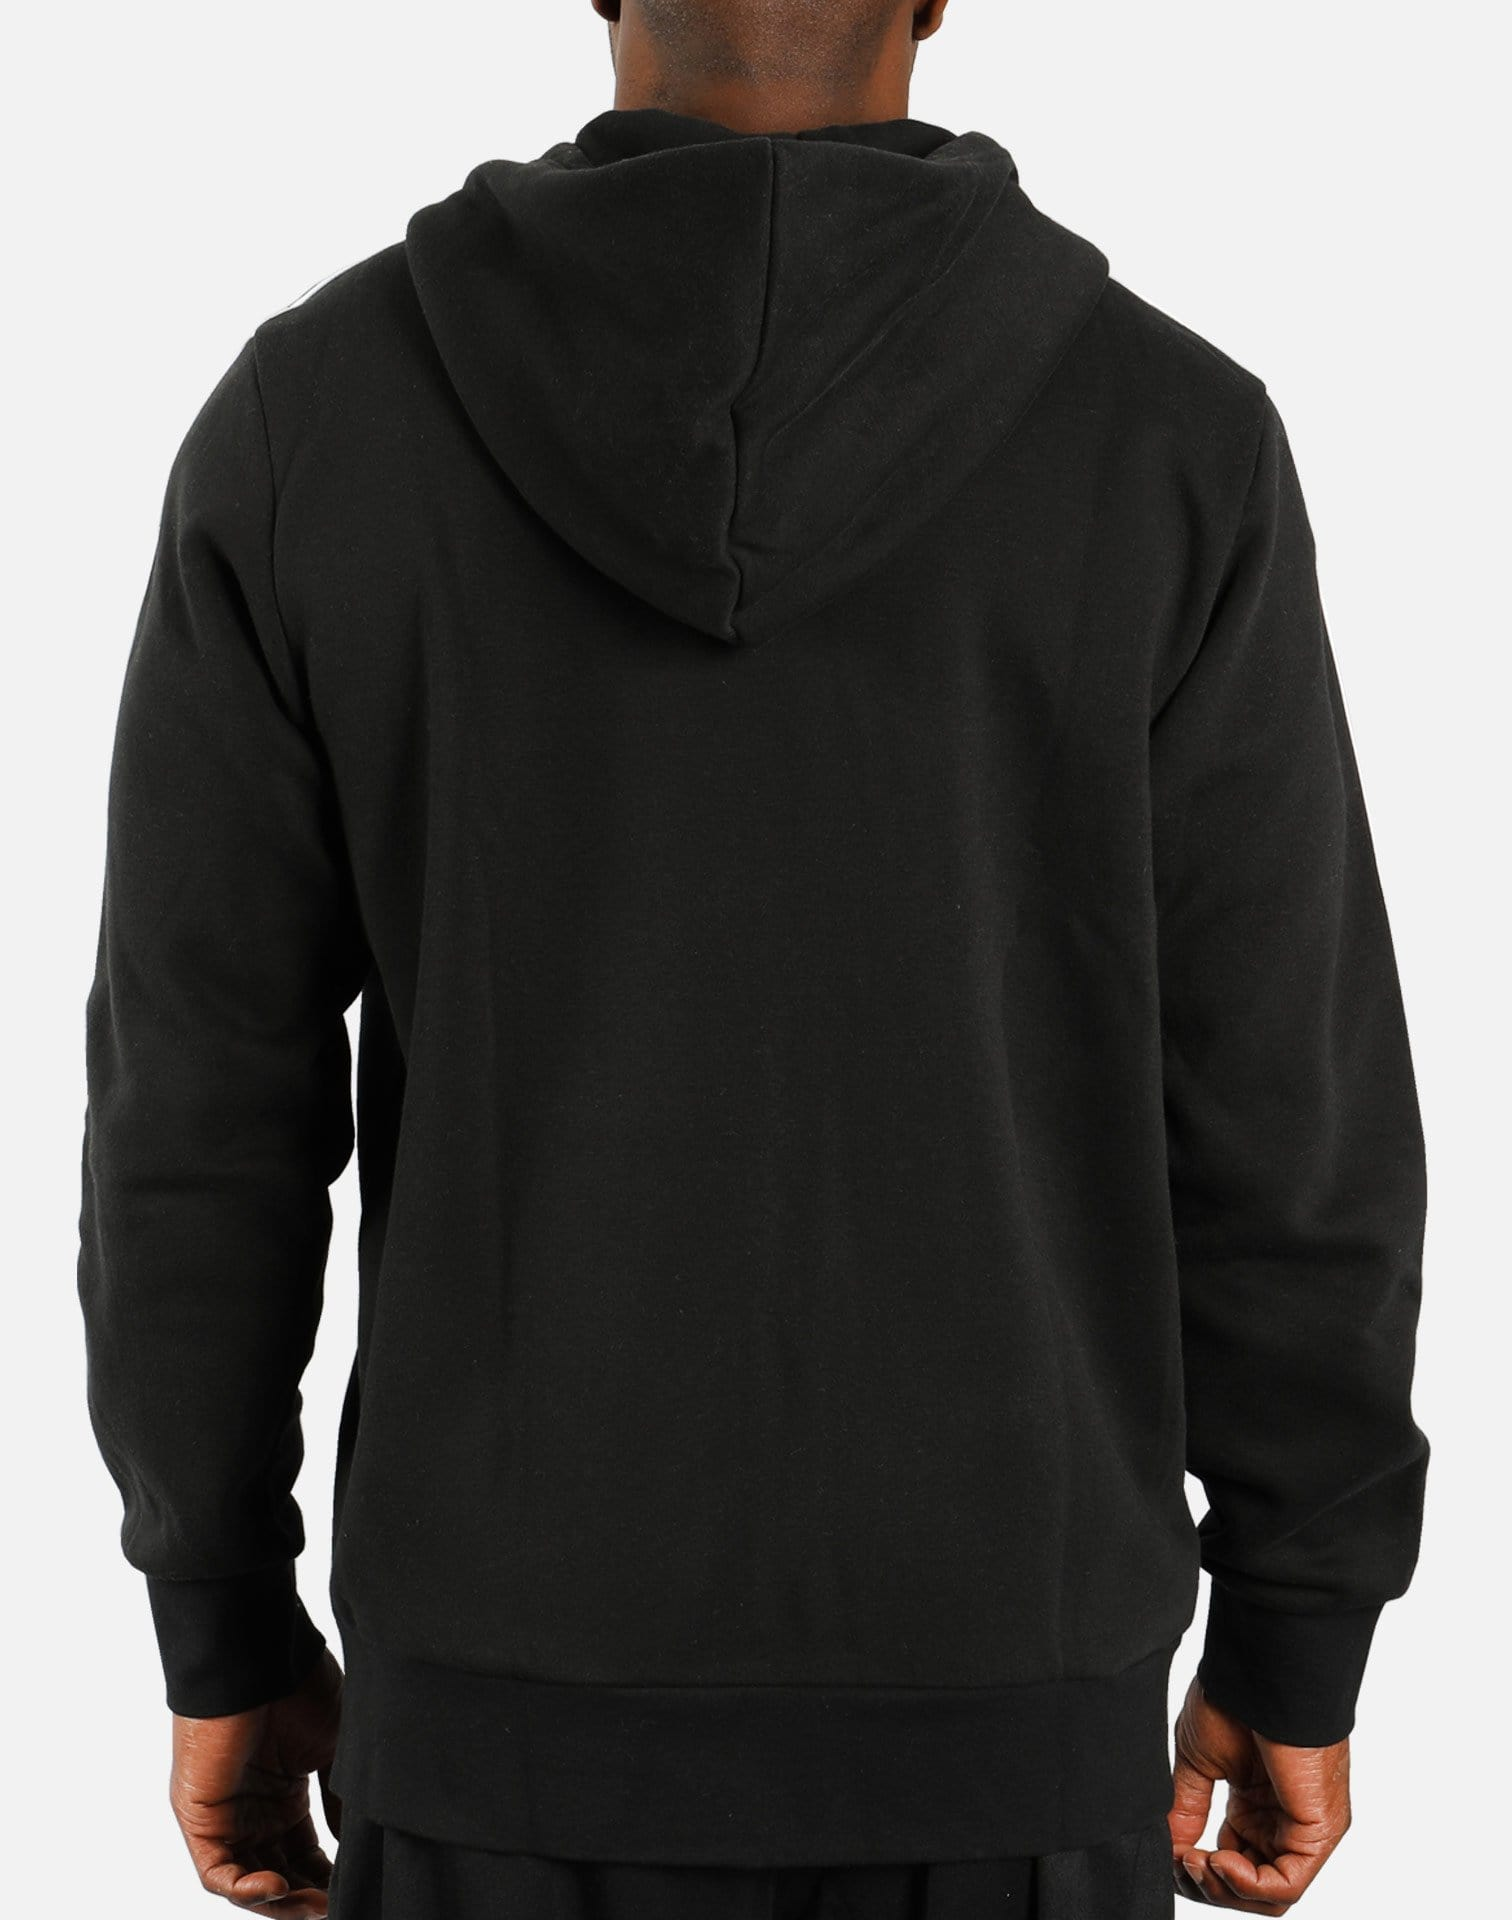 adidas Essential 3-Stripes Fleece Hoodie (Black/White)